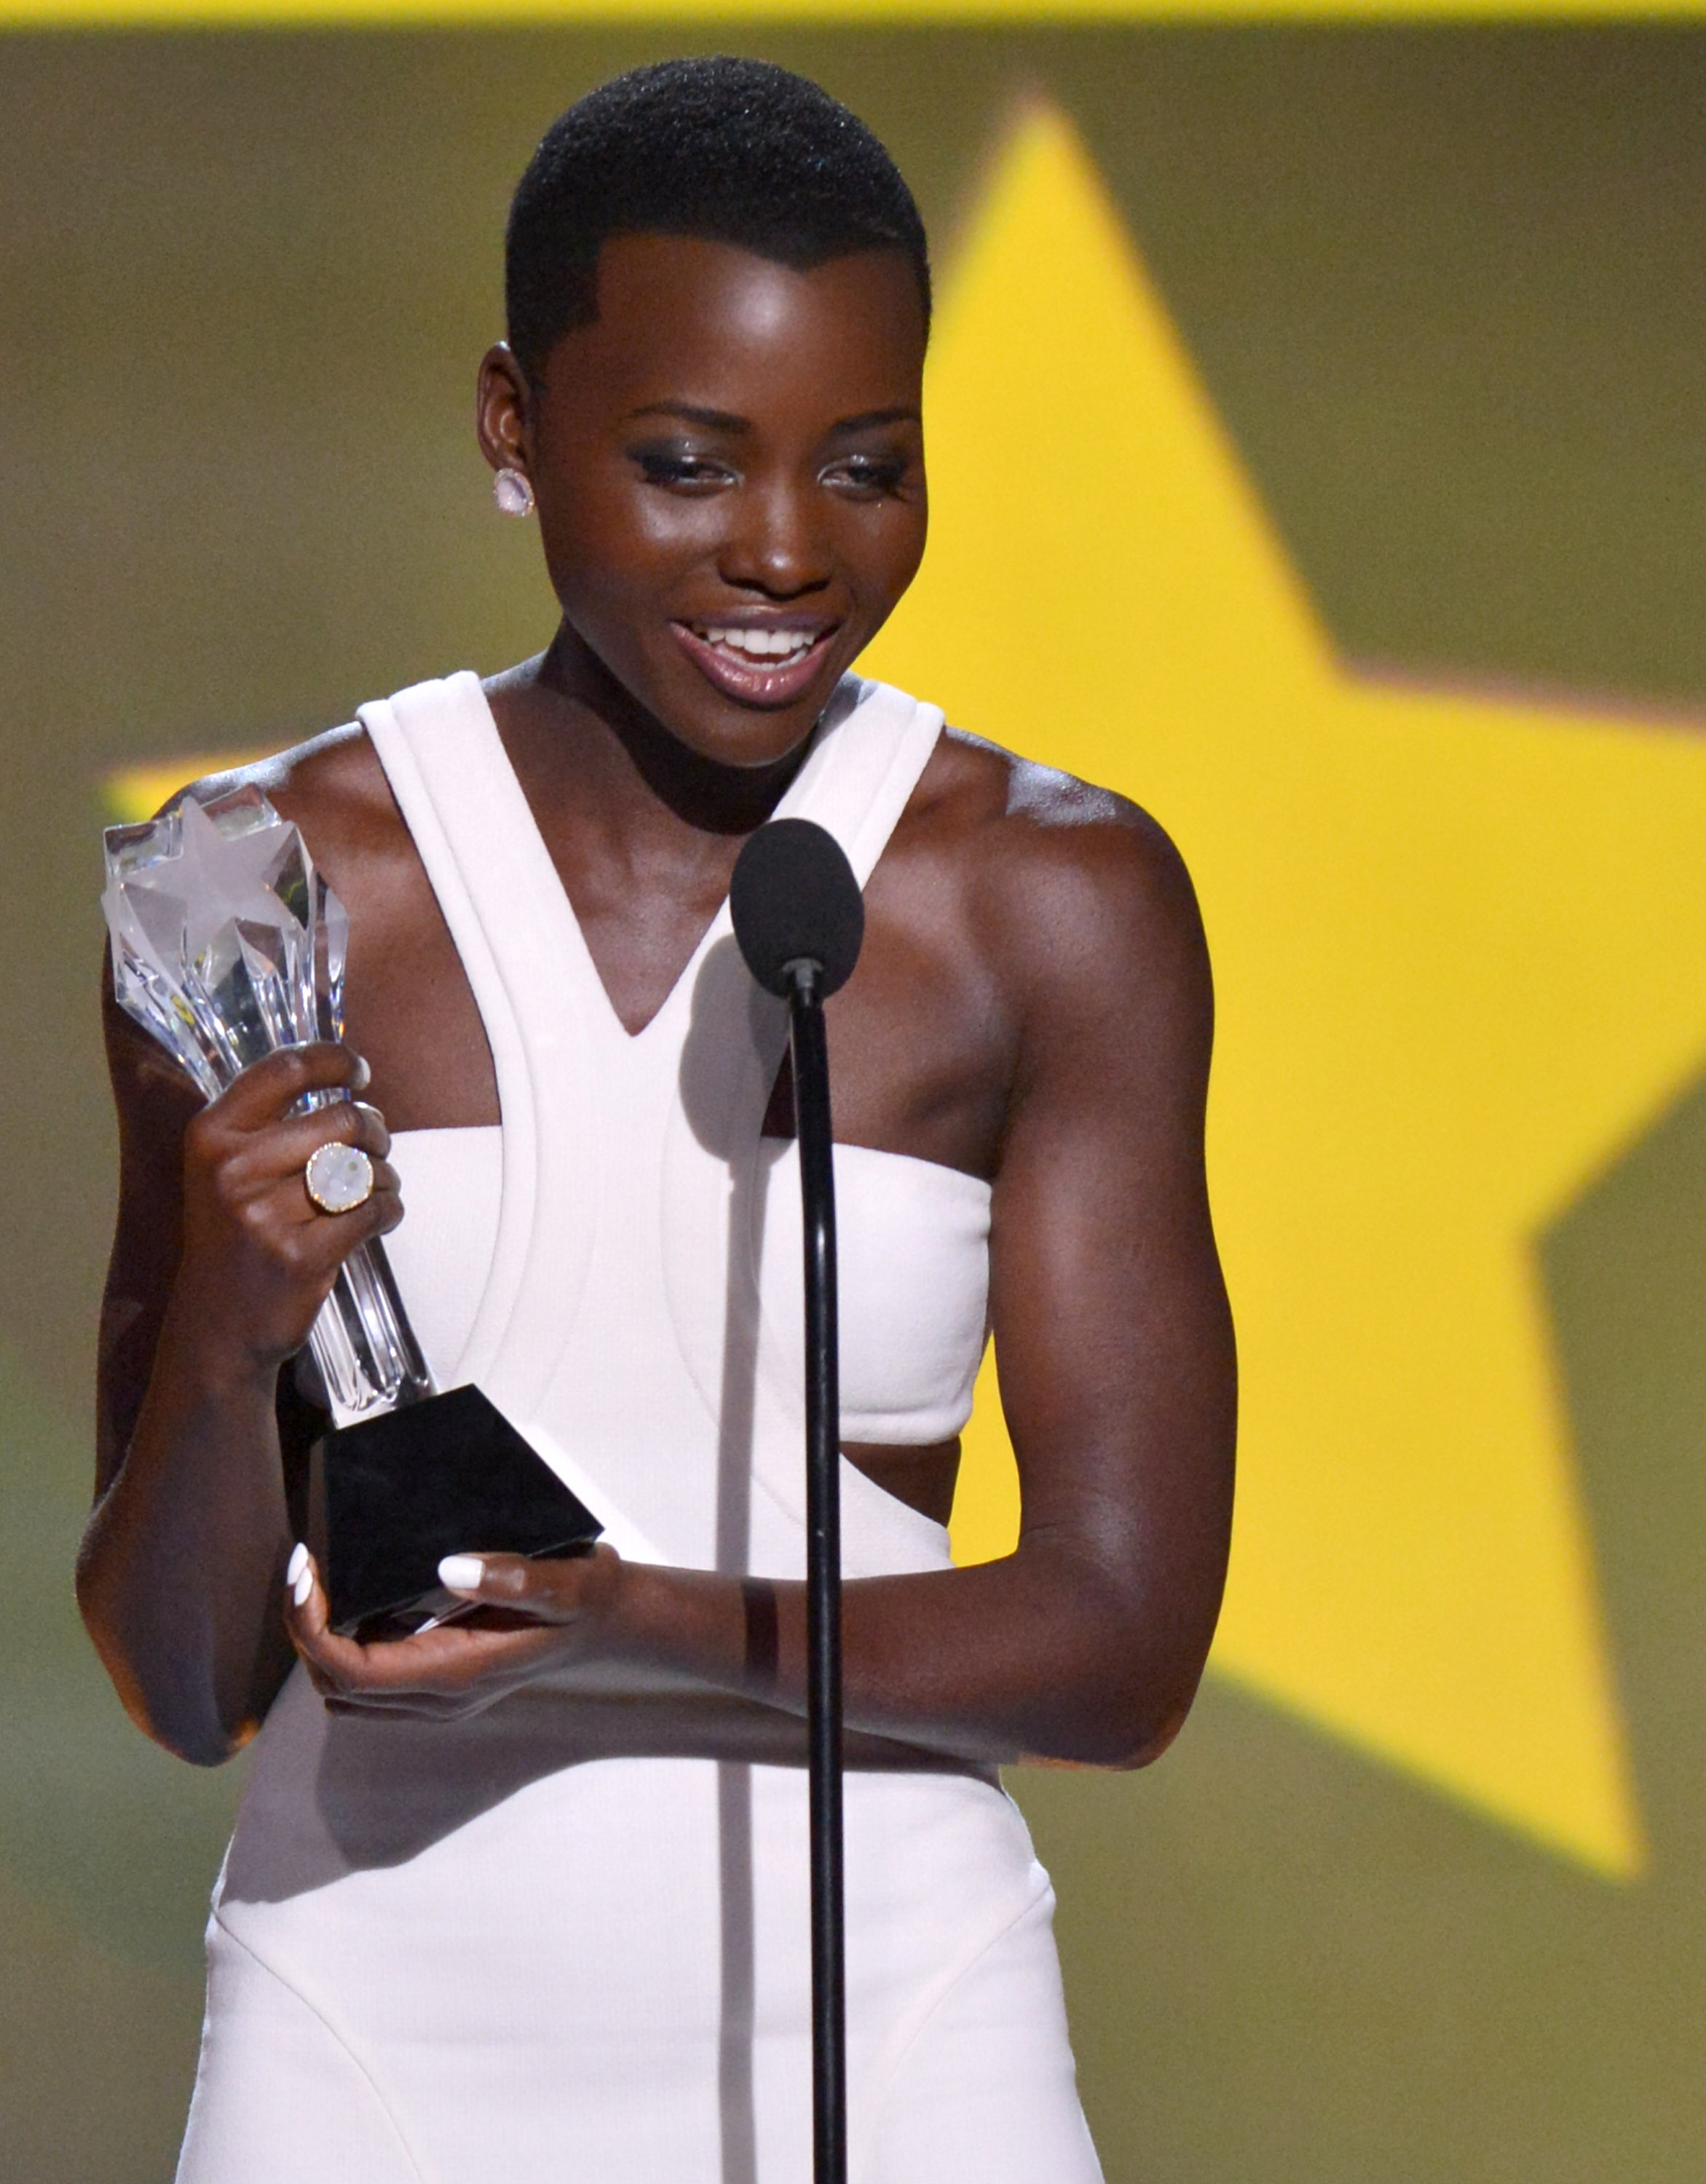 NUVO Daily Edit: Awards Season, Lupita Nyong'o, 12 Years a Slave